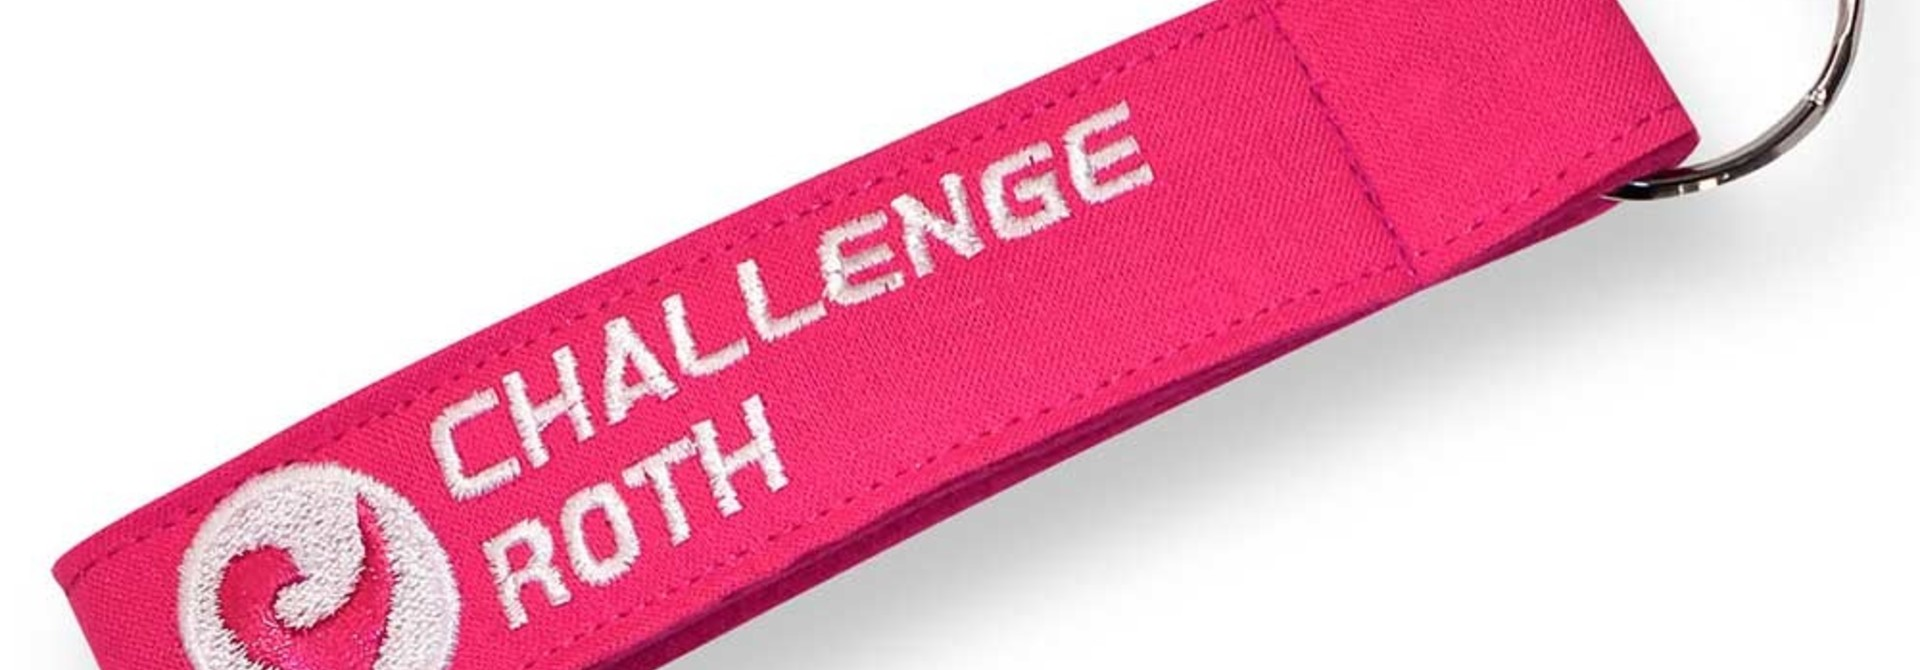 Challenge Key Chain in Pink